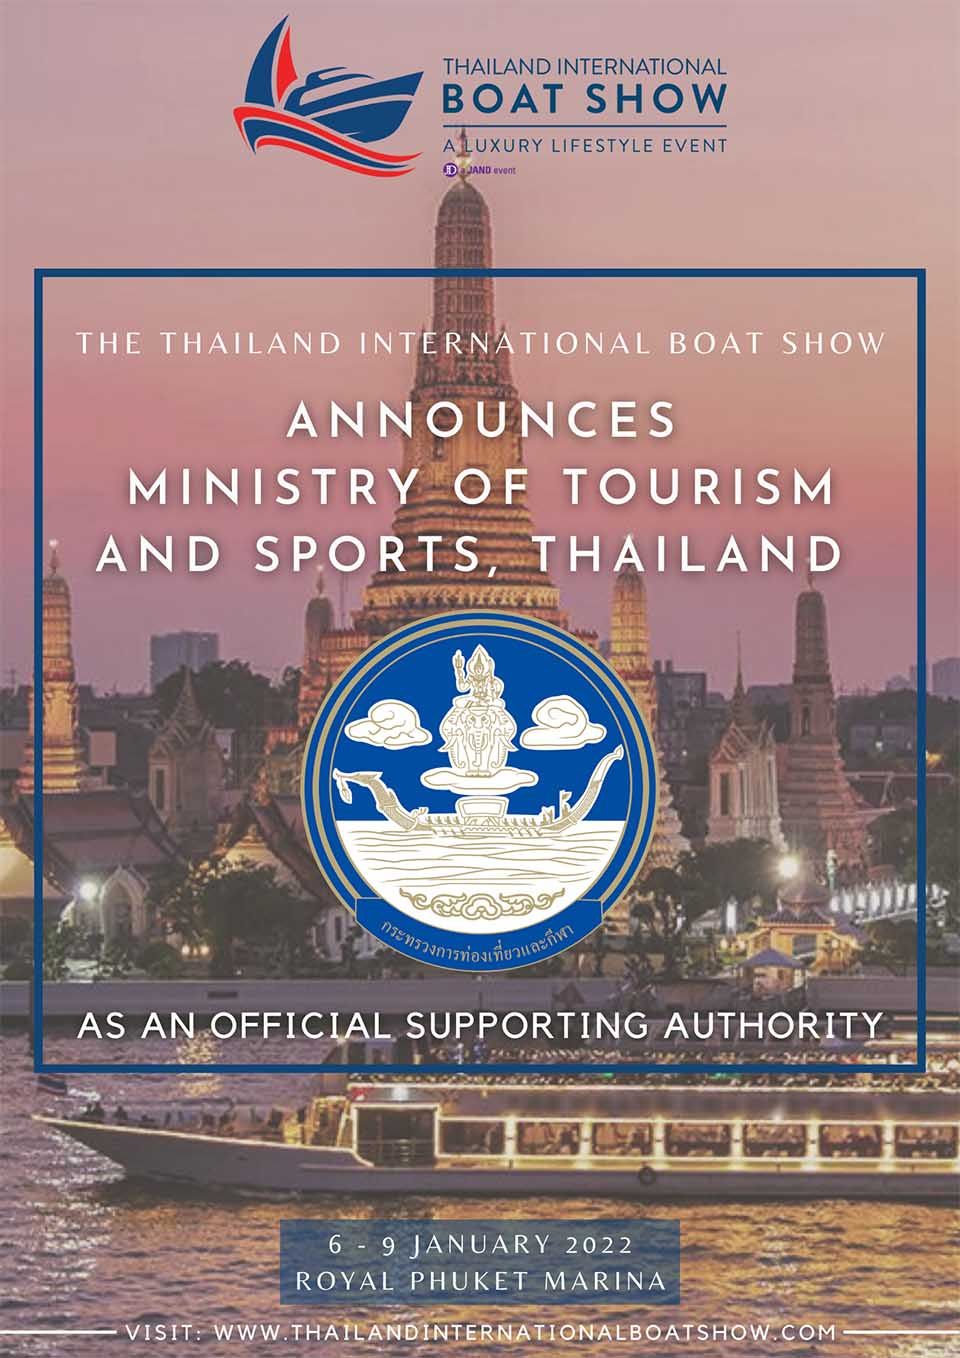 Ministry of Tourism & Sports Thailand announced as official supporting authority for The Thailand International Boat Show